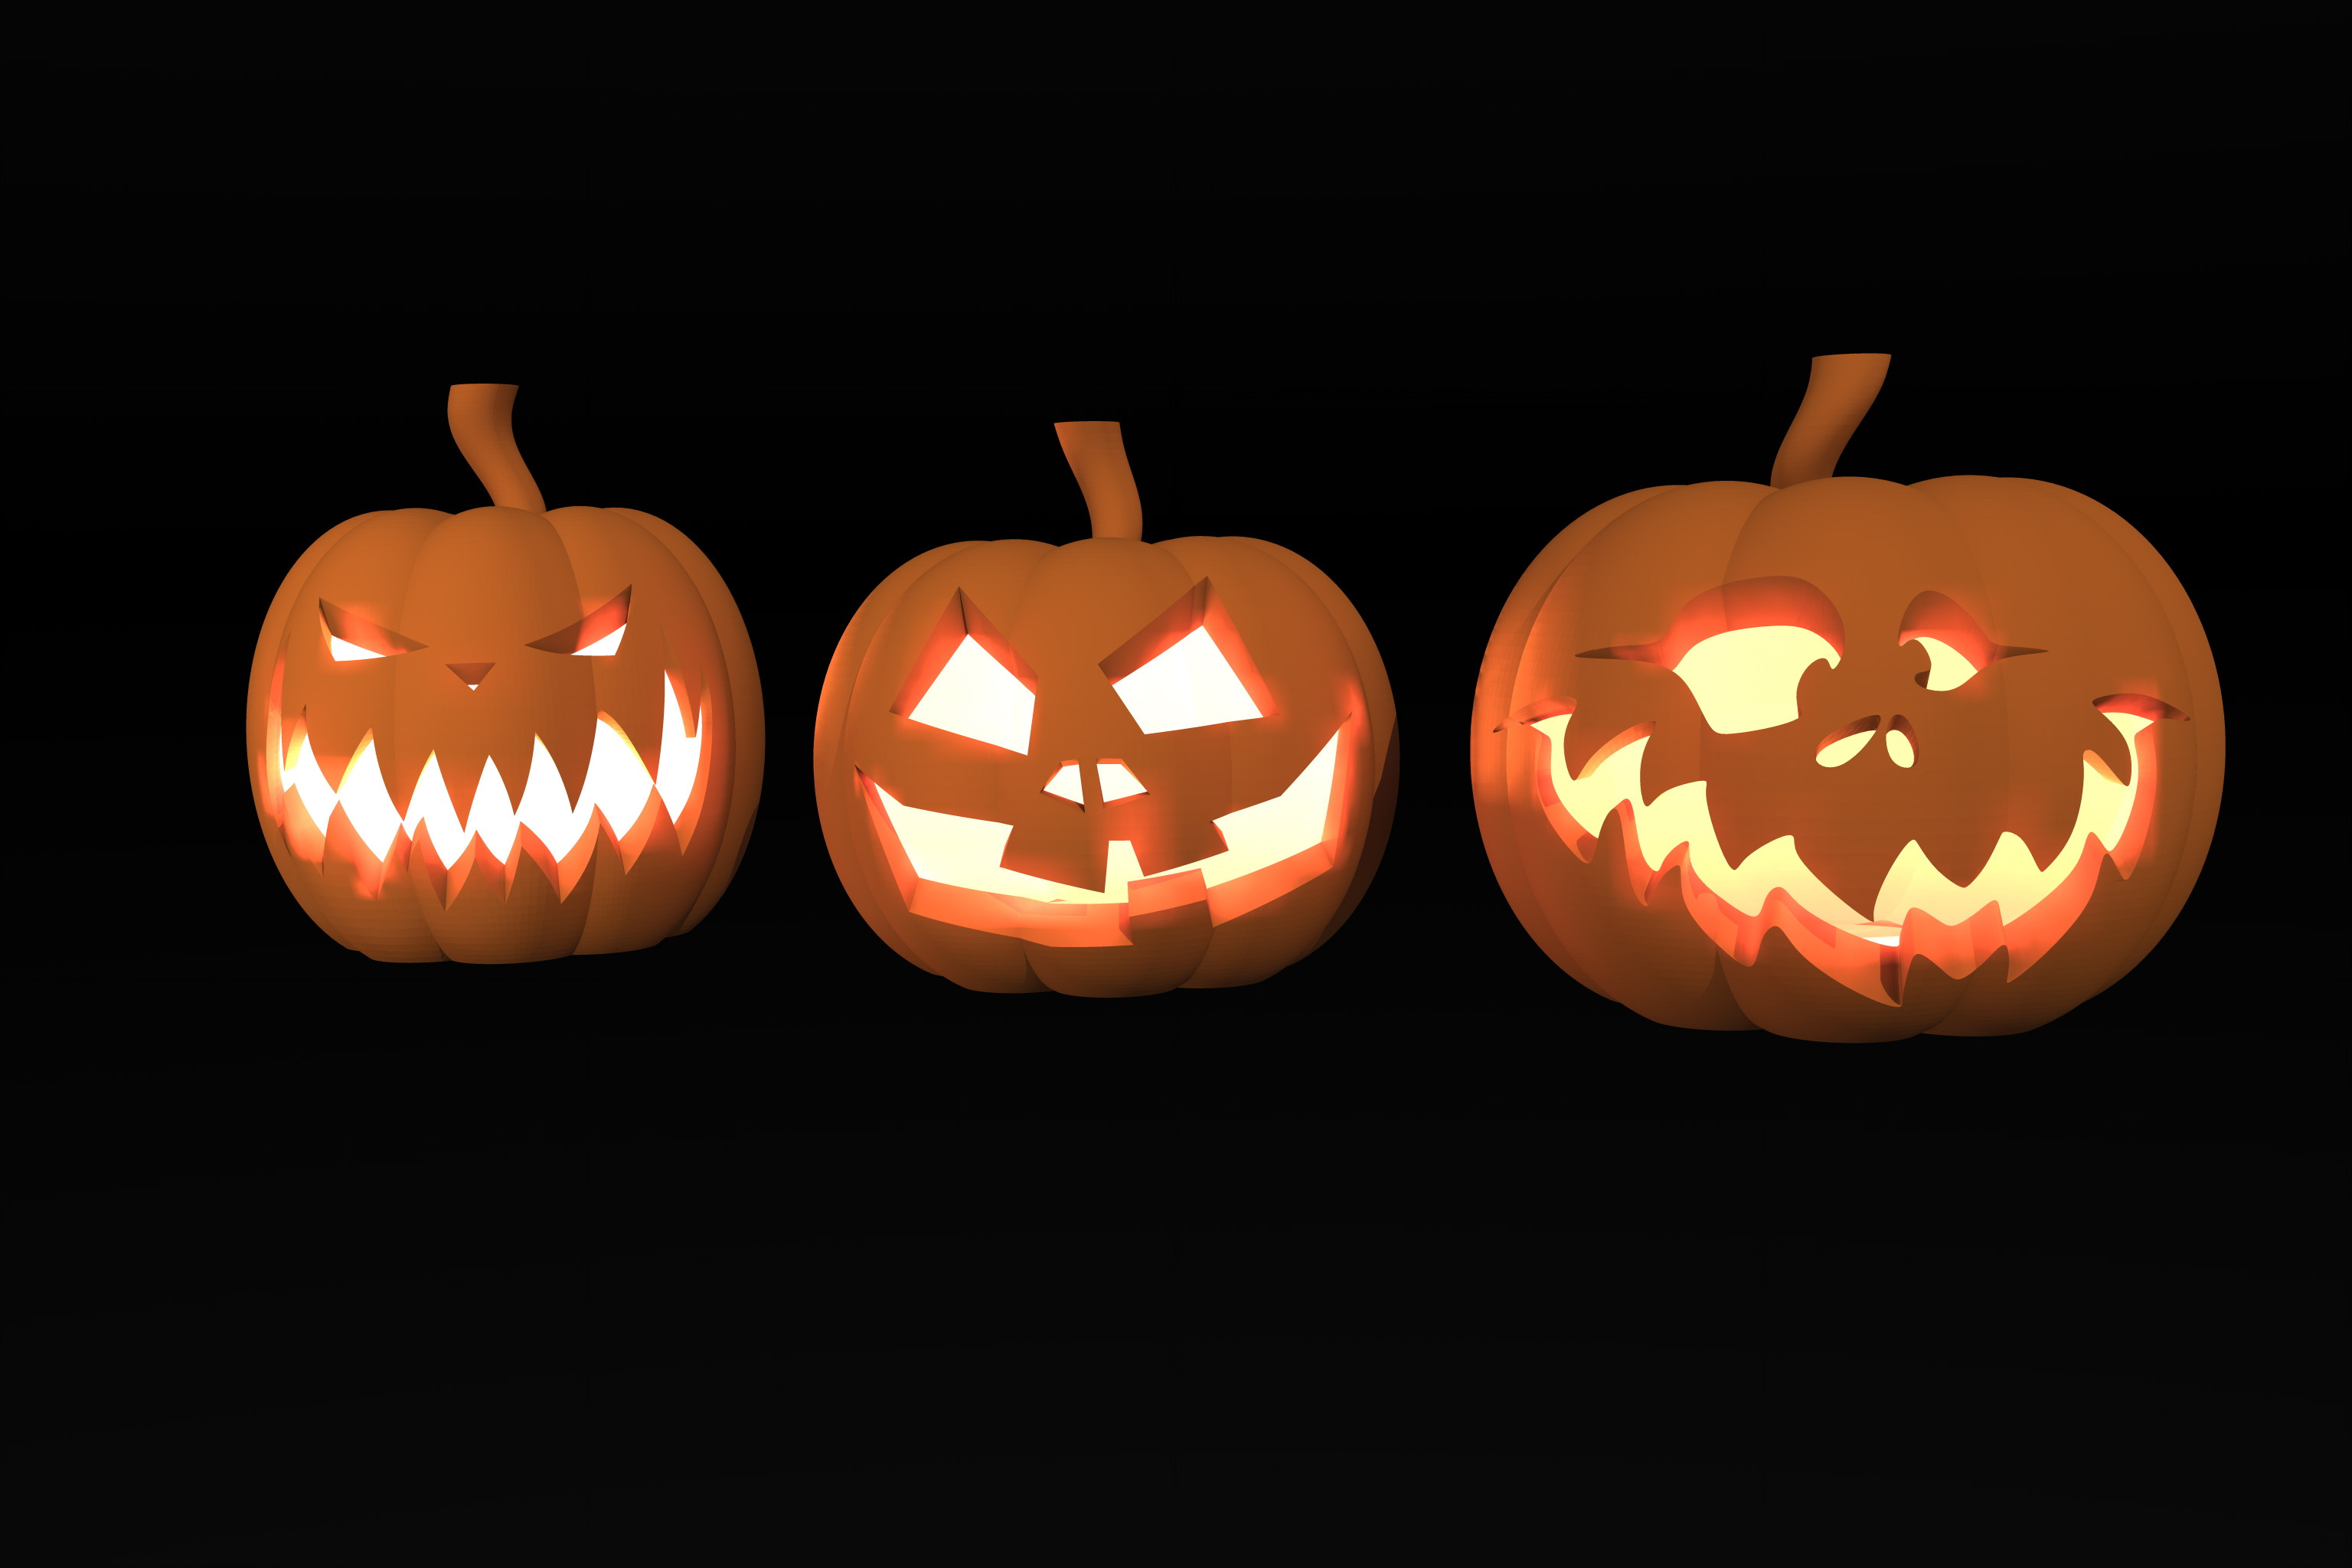 Halloween Food Decorations New Halloween Pumpkins by Fabricke Thingiverse Gallery